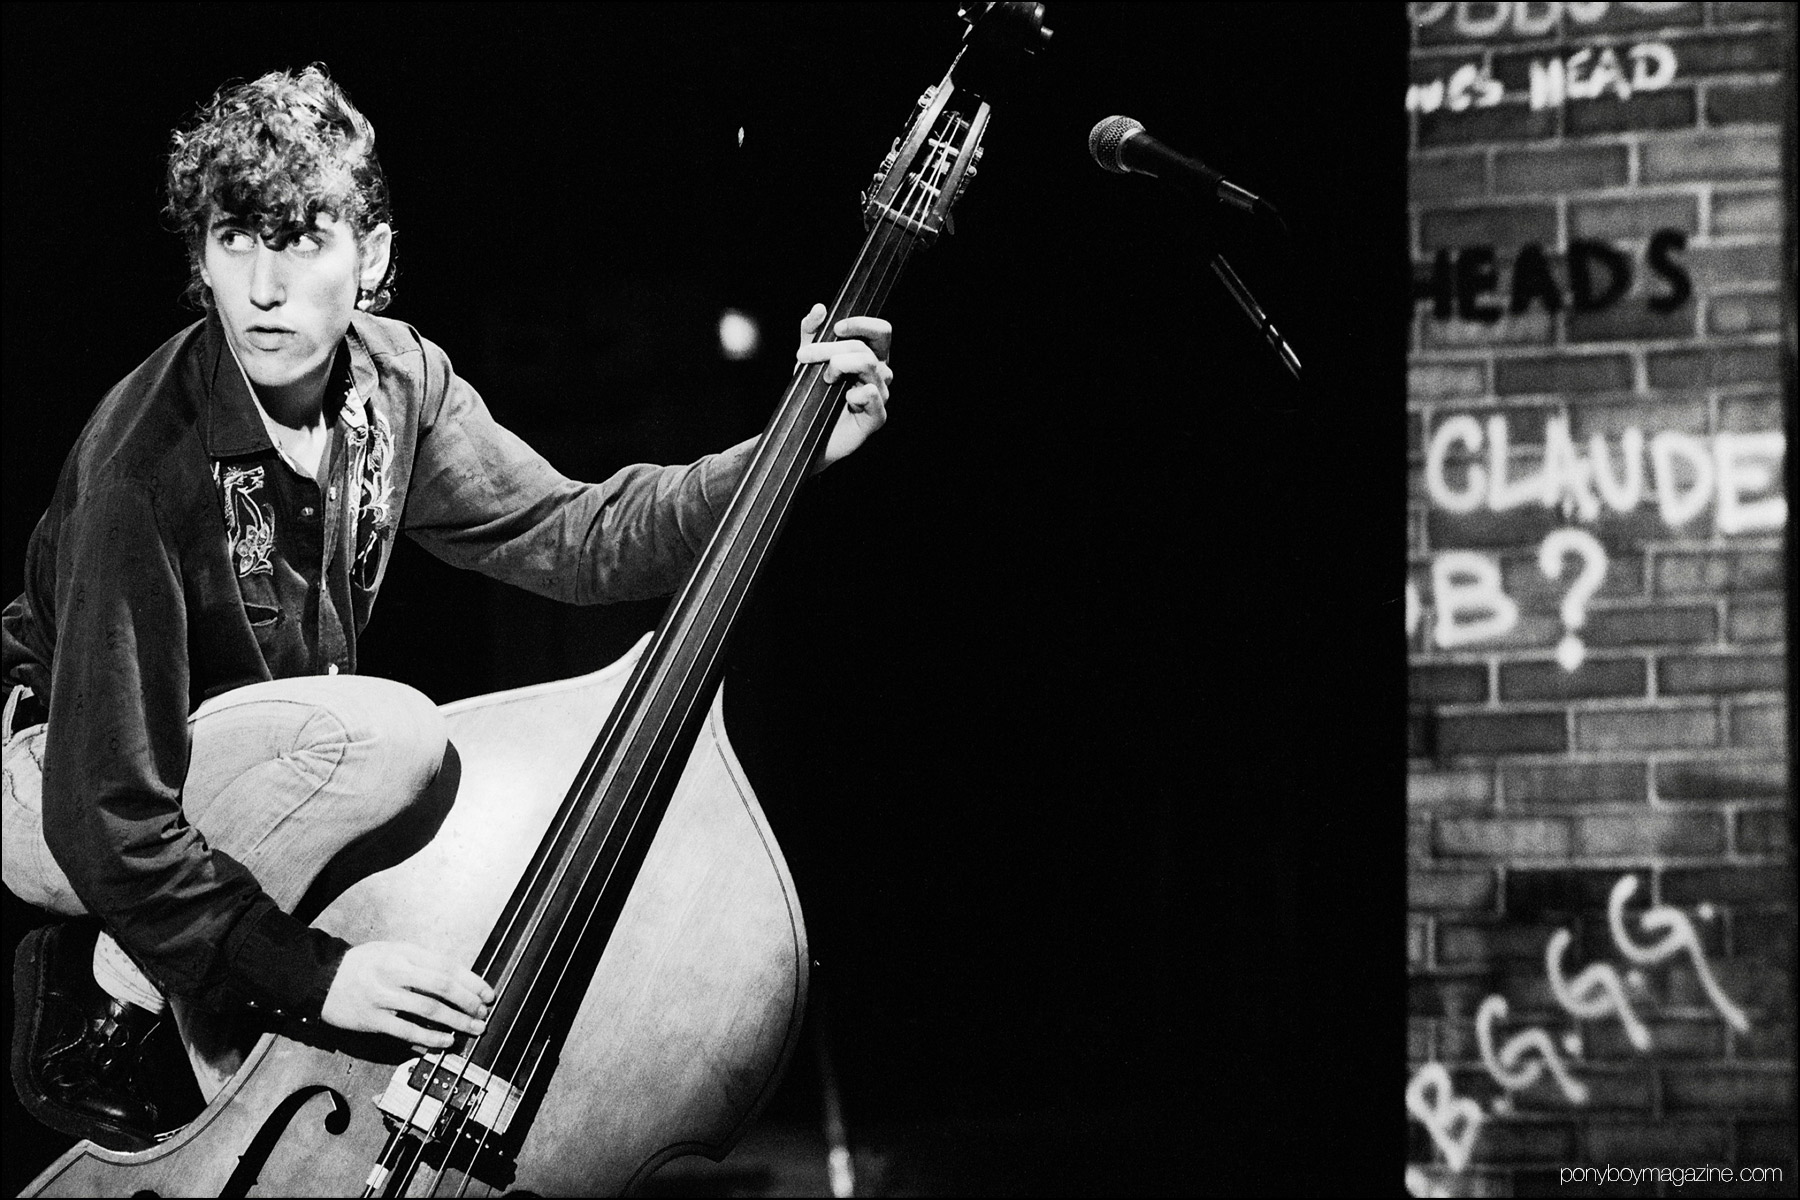 Neo-rockabilly bassist Lee Rocker, photographed by Manfred Becker onstage in Germany. Ponyboy magazine NY.